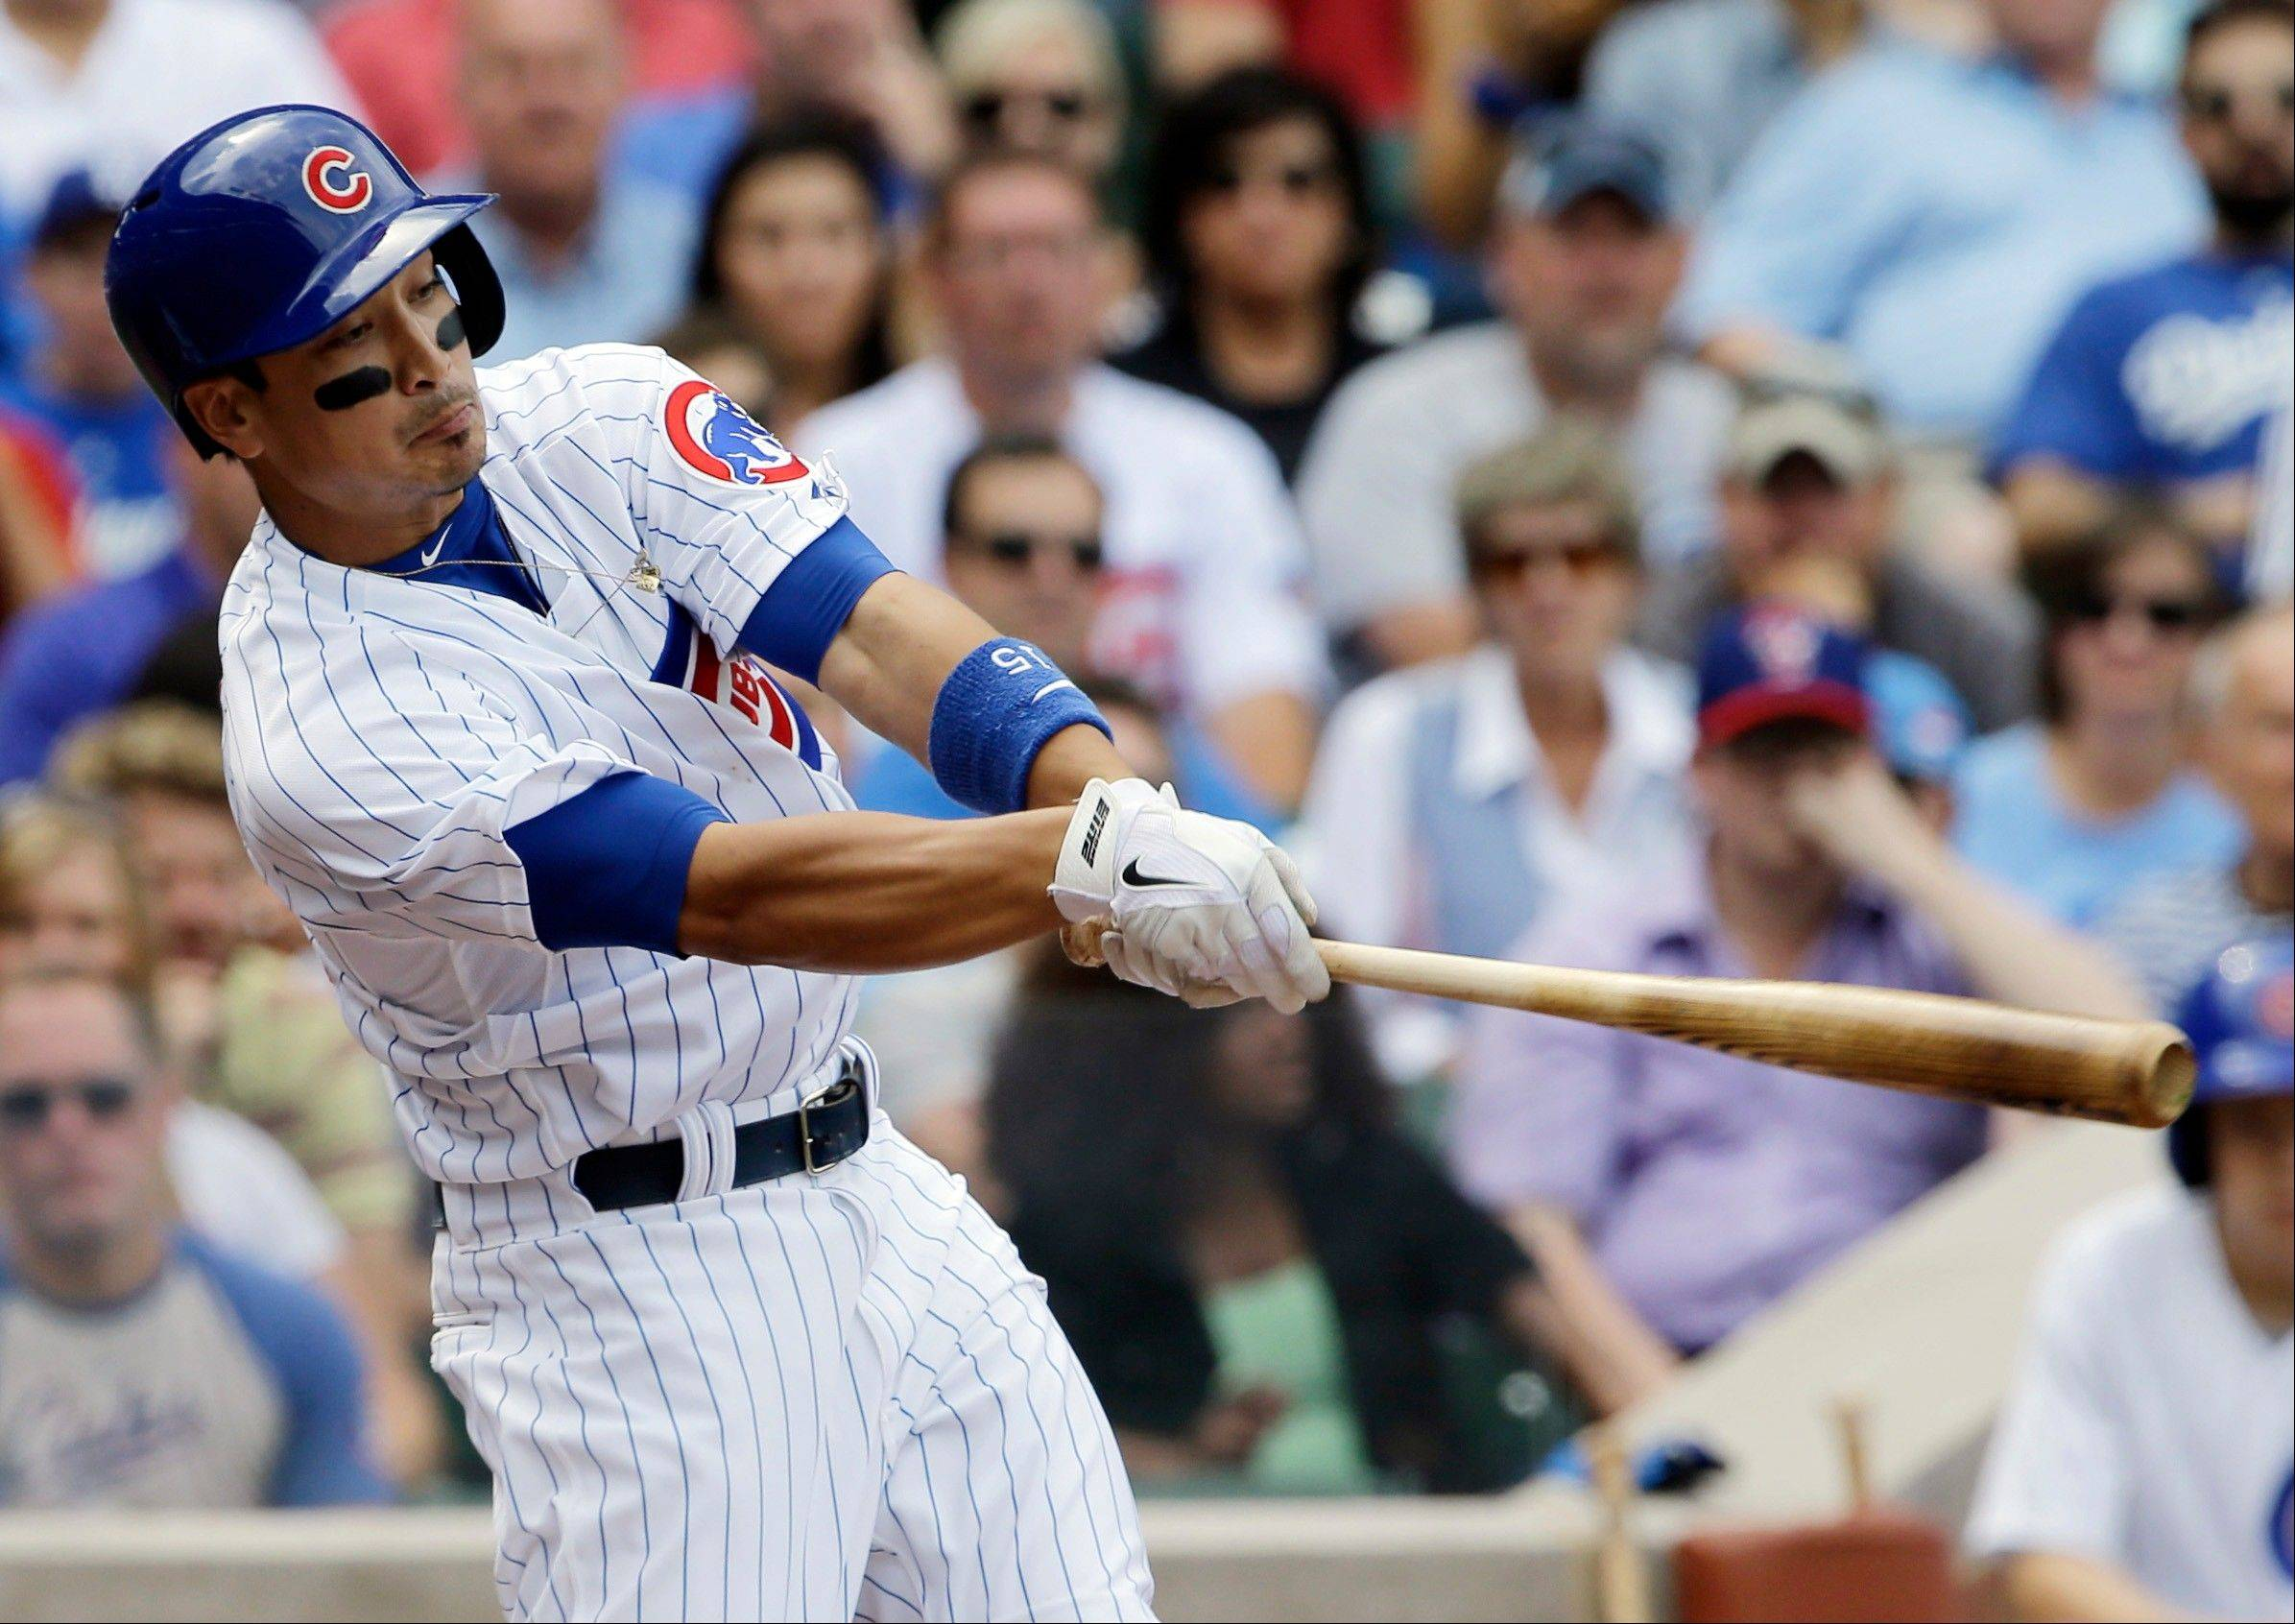 The Cubs and second baseman Darwin Barney agreed to a new one-year contract worth $2.3 million for next season.